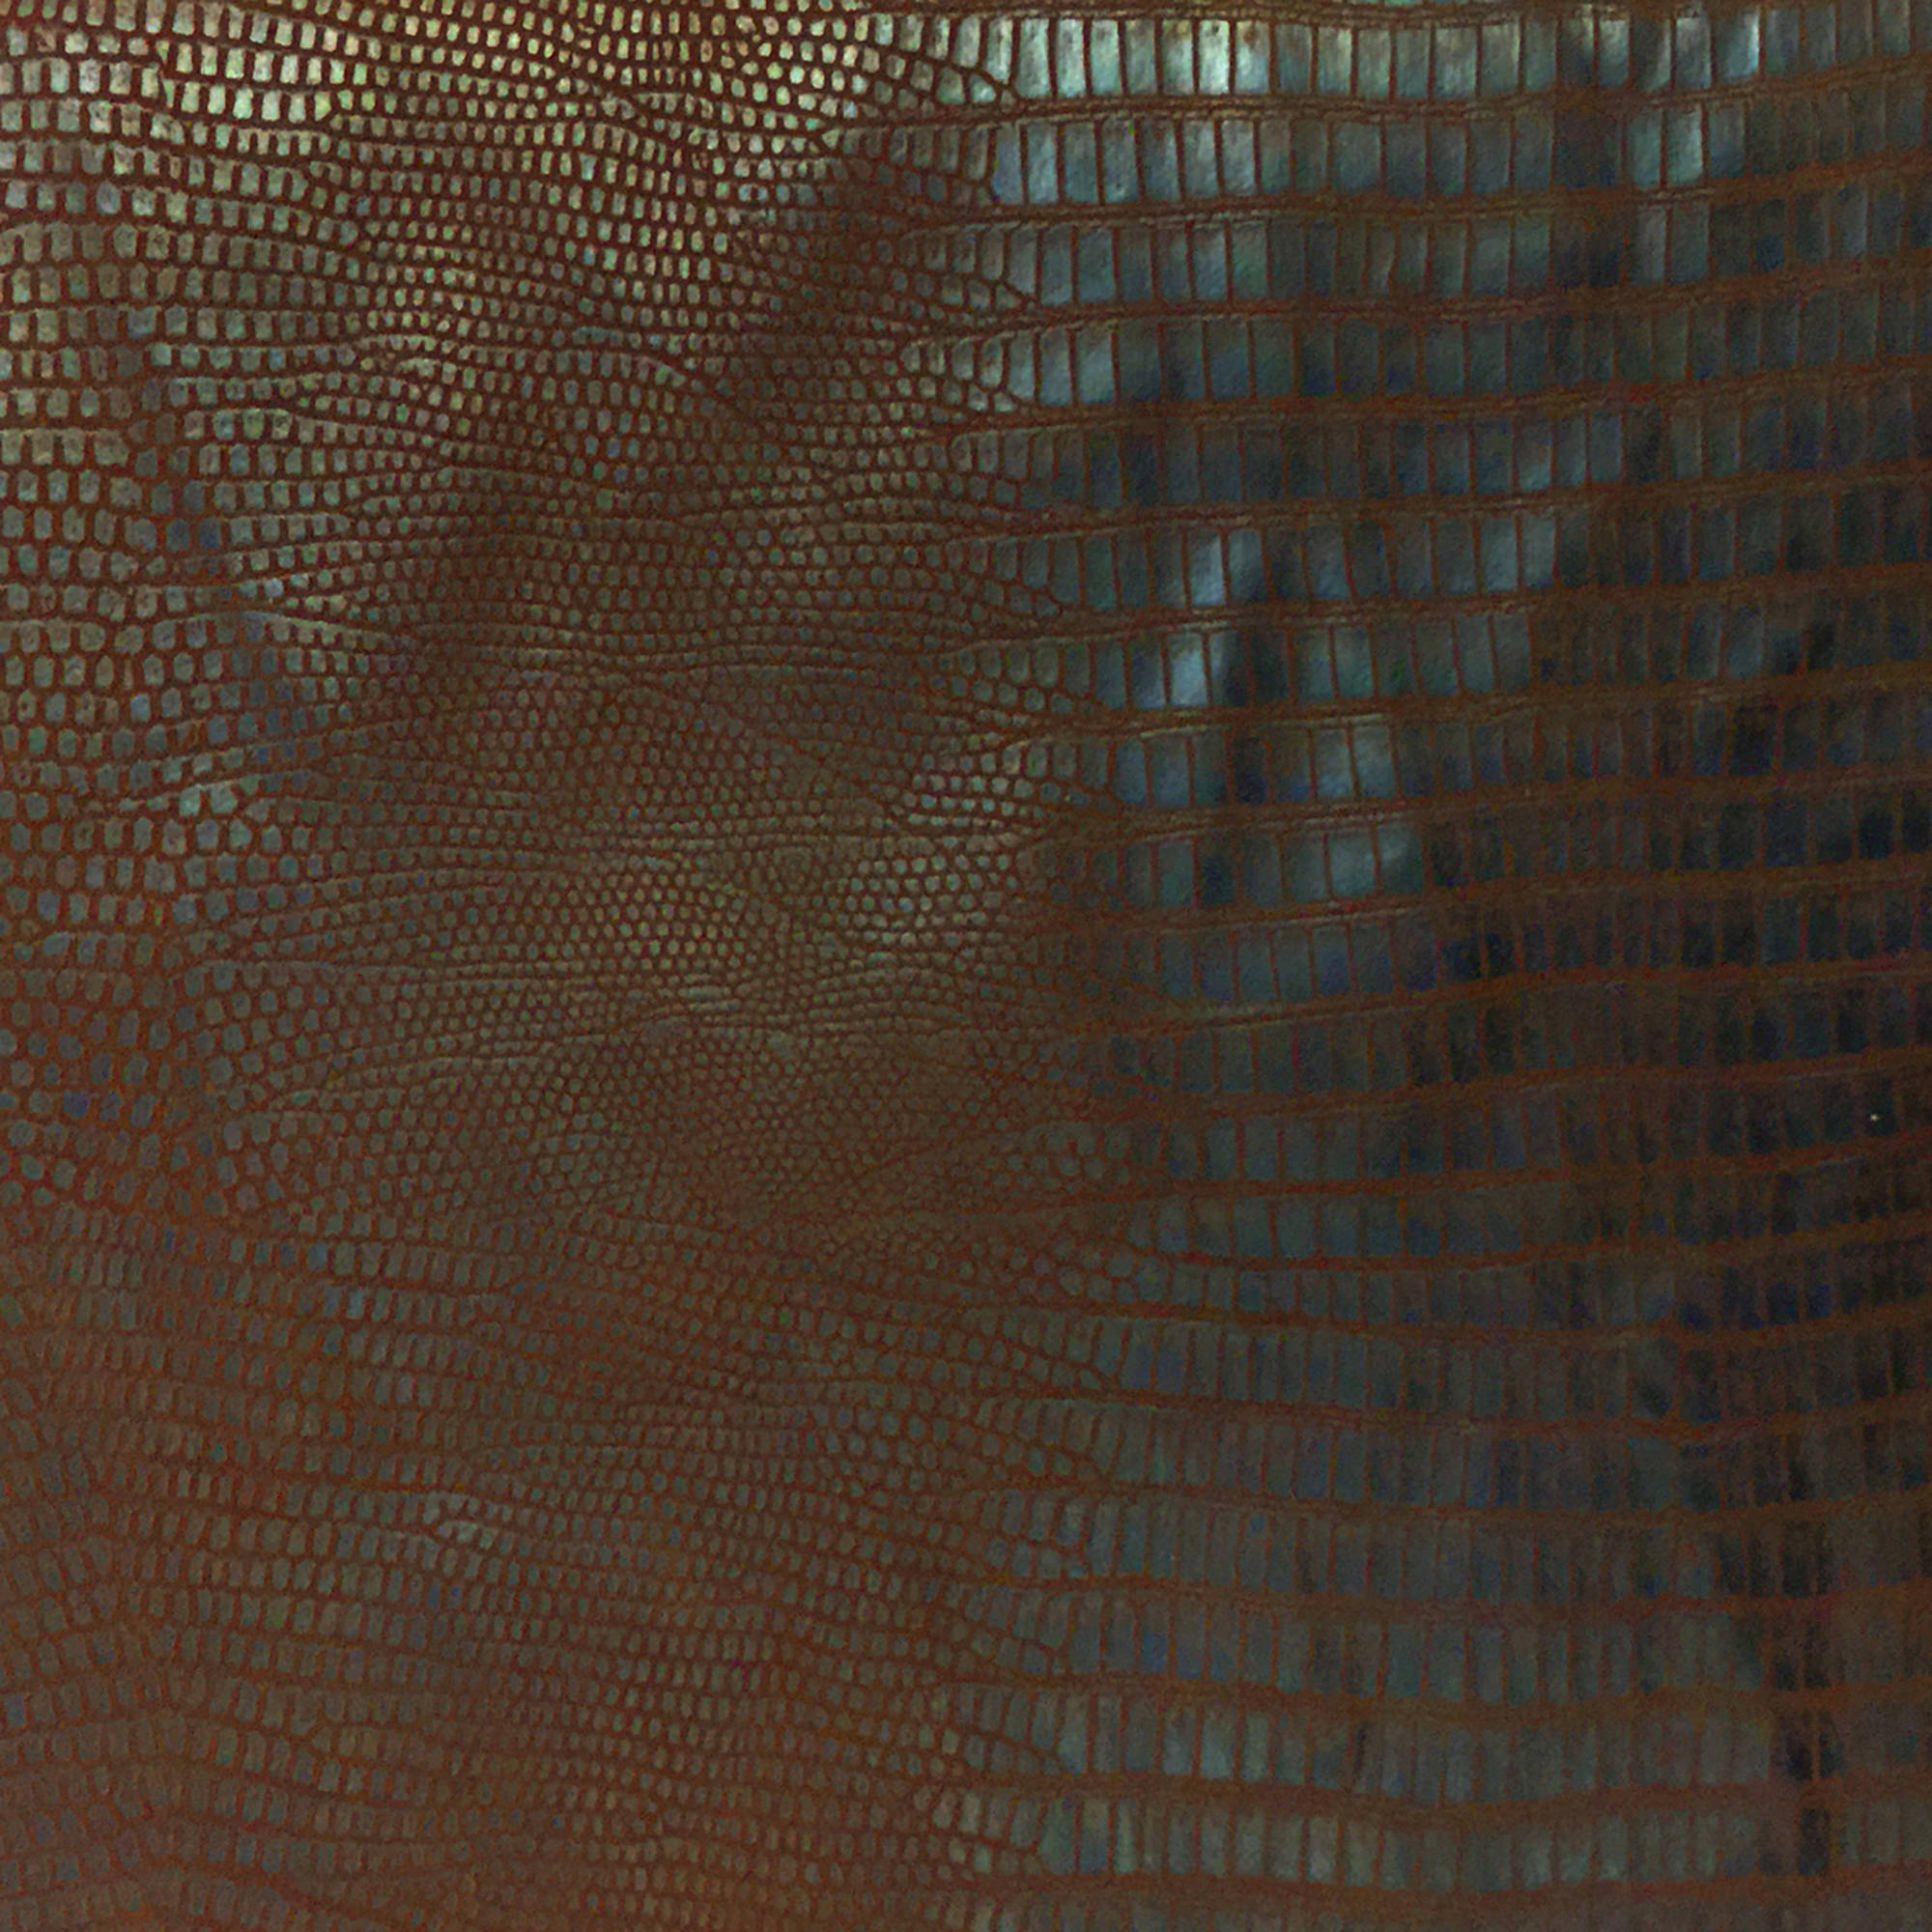 SHASON TEXTILE FAUX LEATHER ALLIGATOR PRINT UPHOLSTERY FABRIC, BROWN